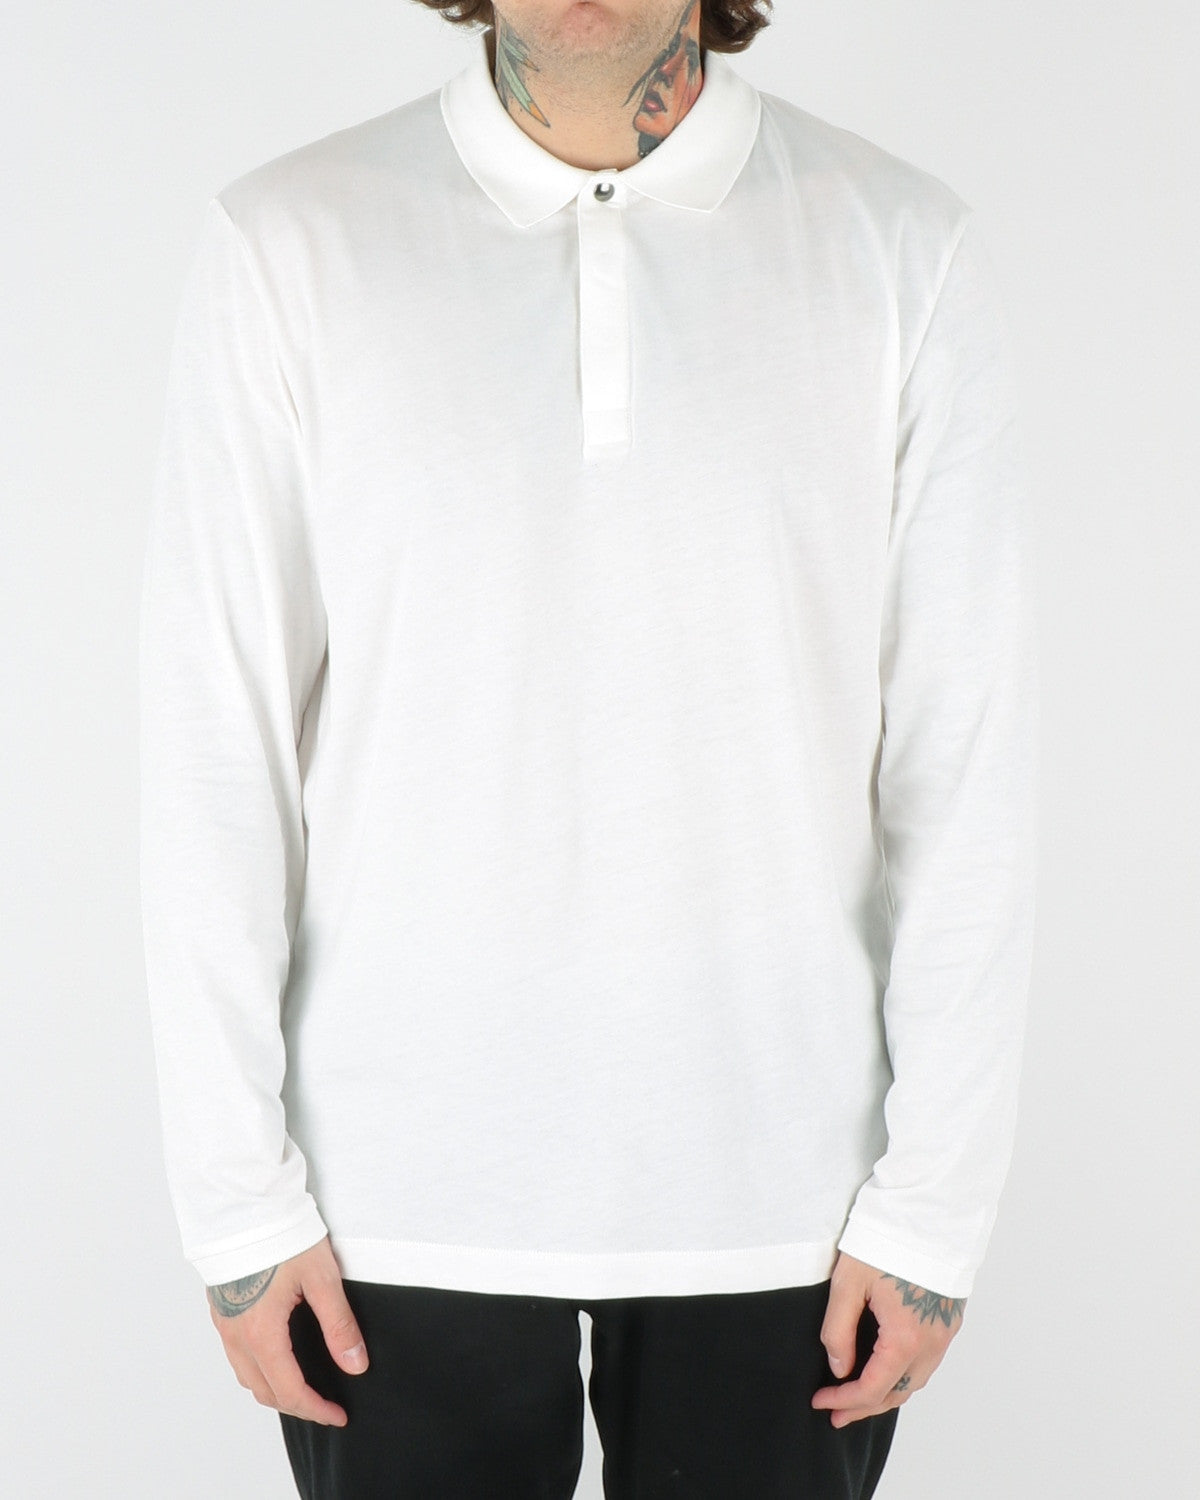 whyred_sun longsleeve_offwhite_view_1_2